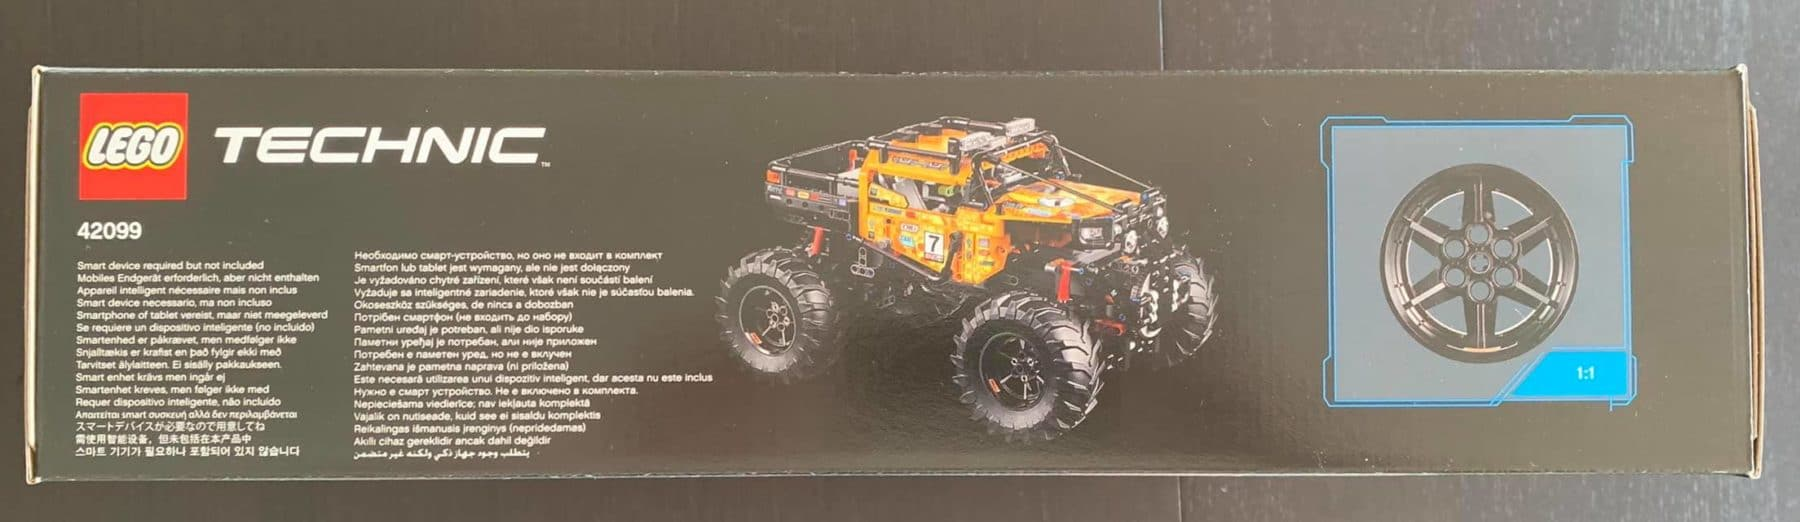 LEGO 42099 Technic 4x4 Crawler Box